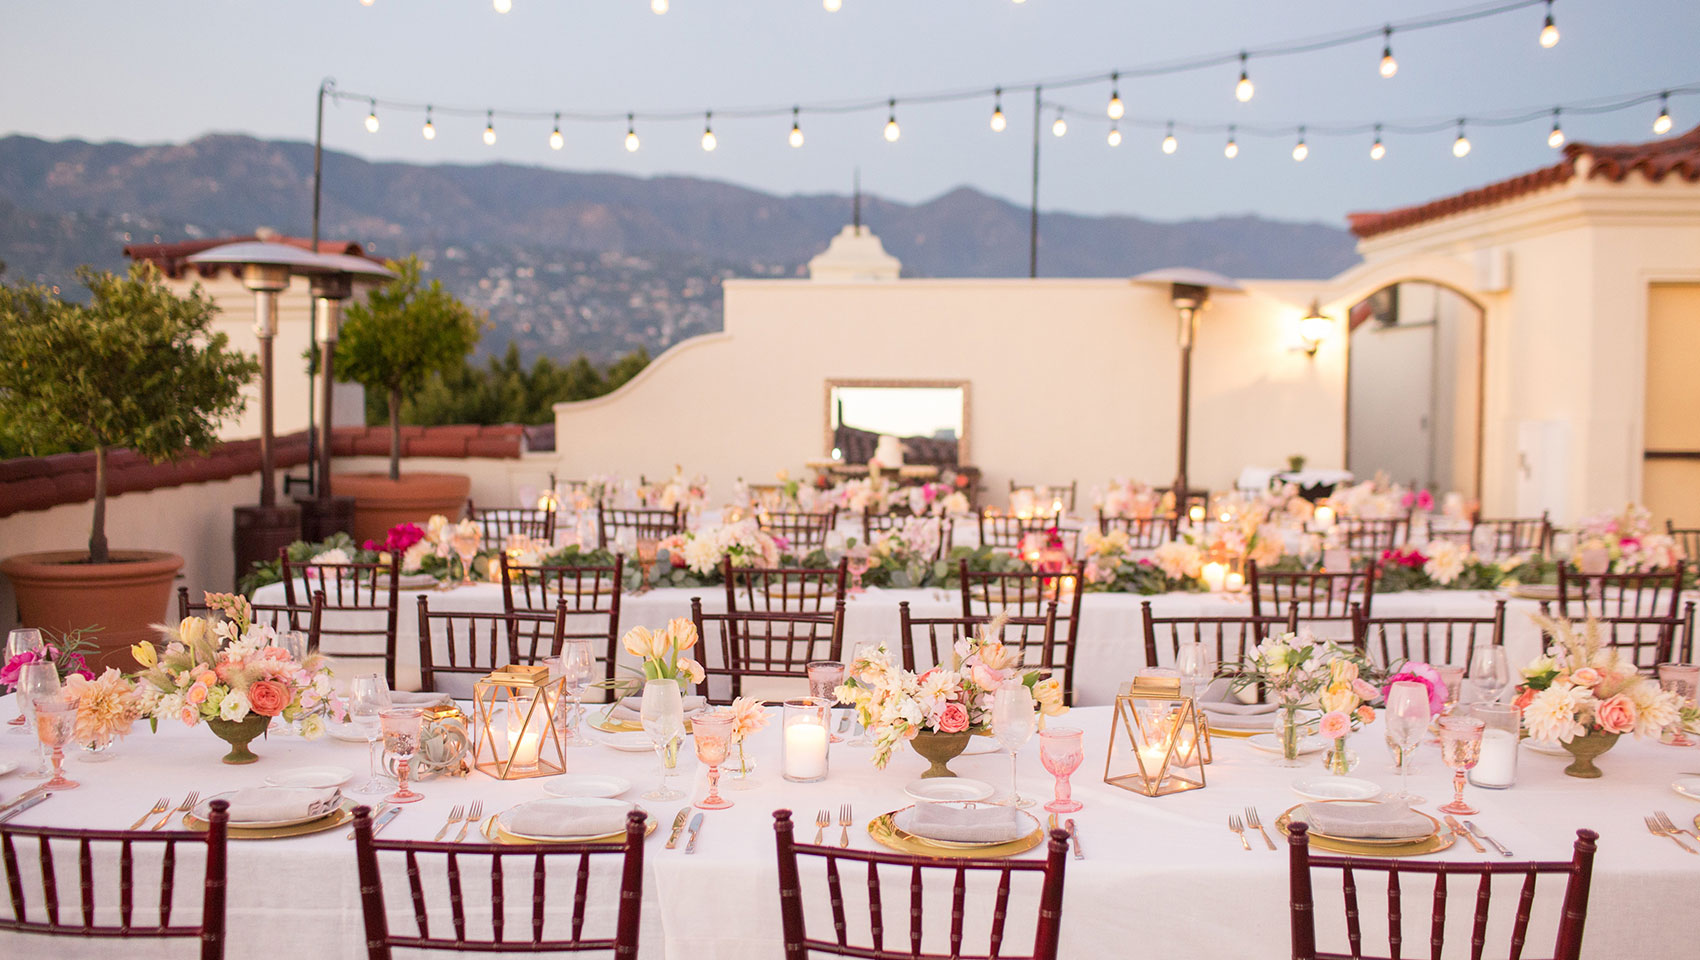 Santa barbara wedding venues kimpton canary hotel for Best places for wedding receptions